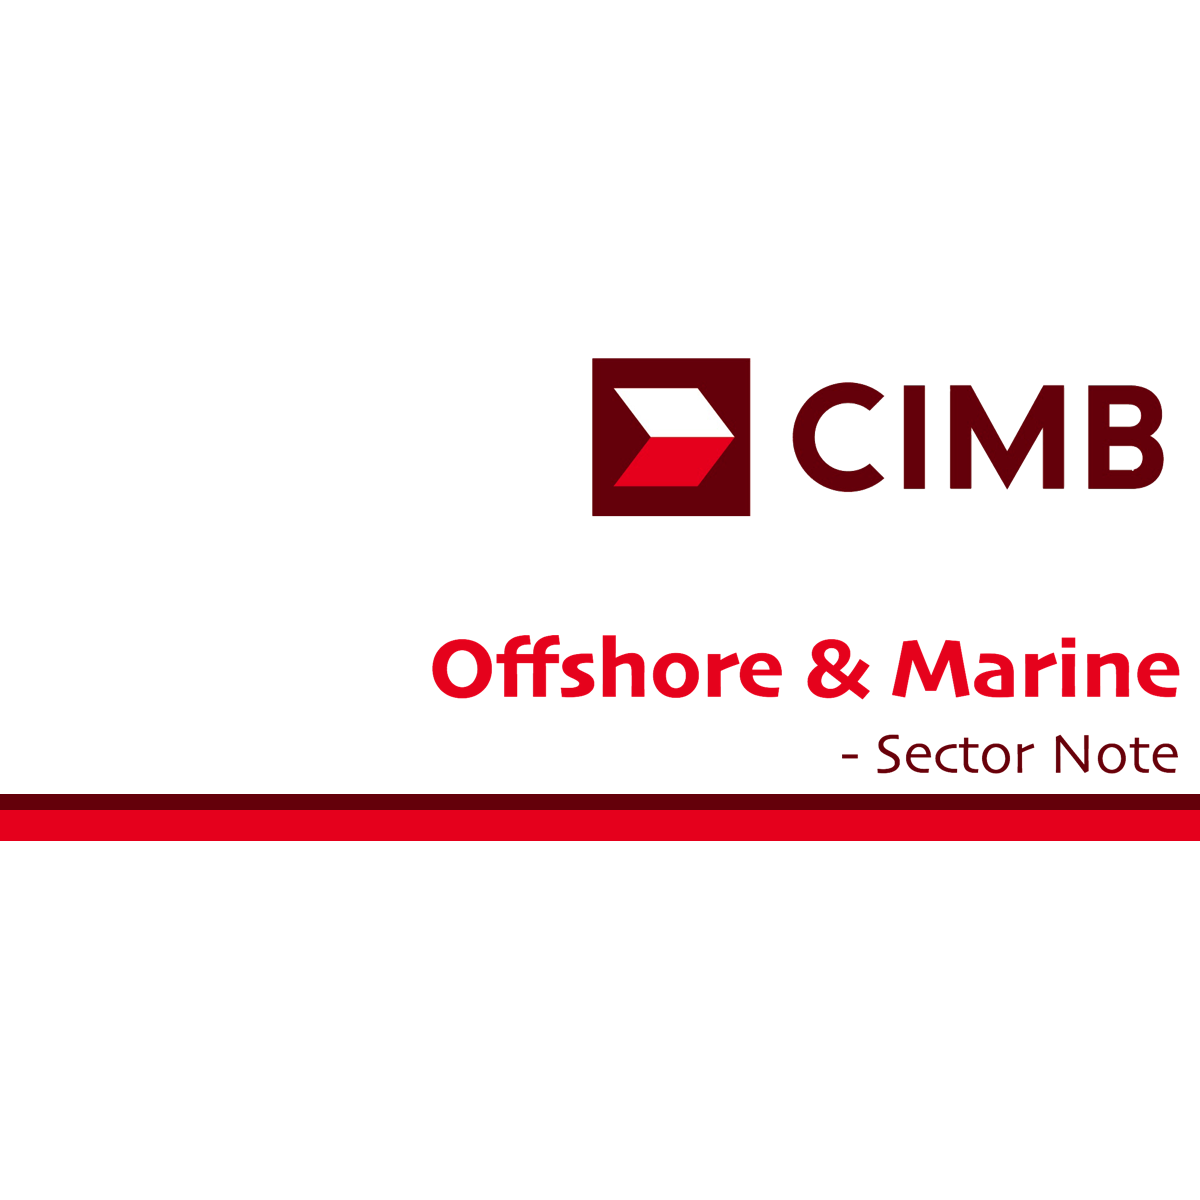 Offshore & Marine Small / Mid-Caps - CIMB Research 2018-01-12: See You After 1H18